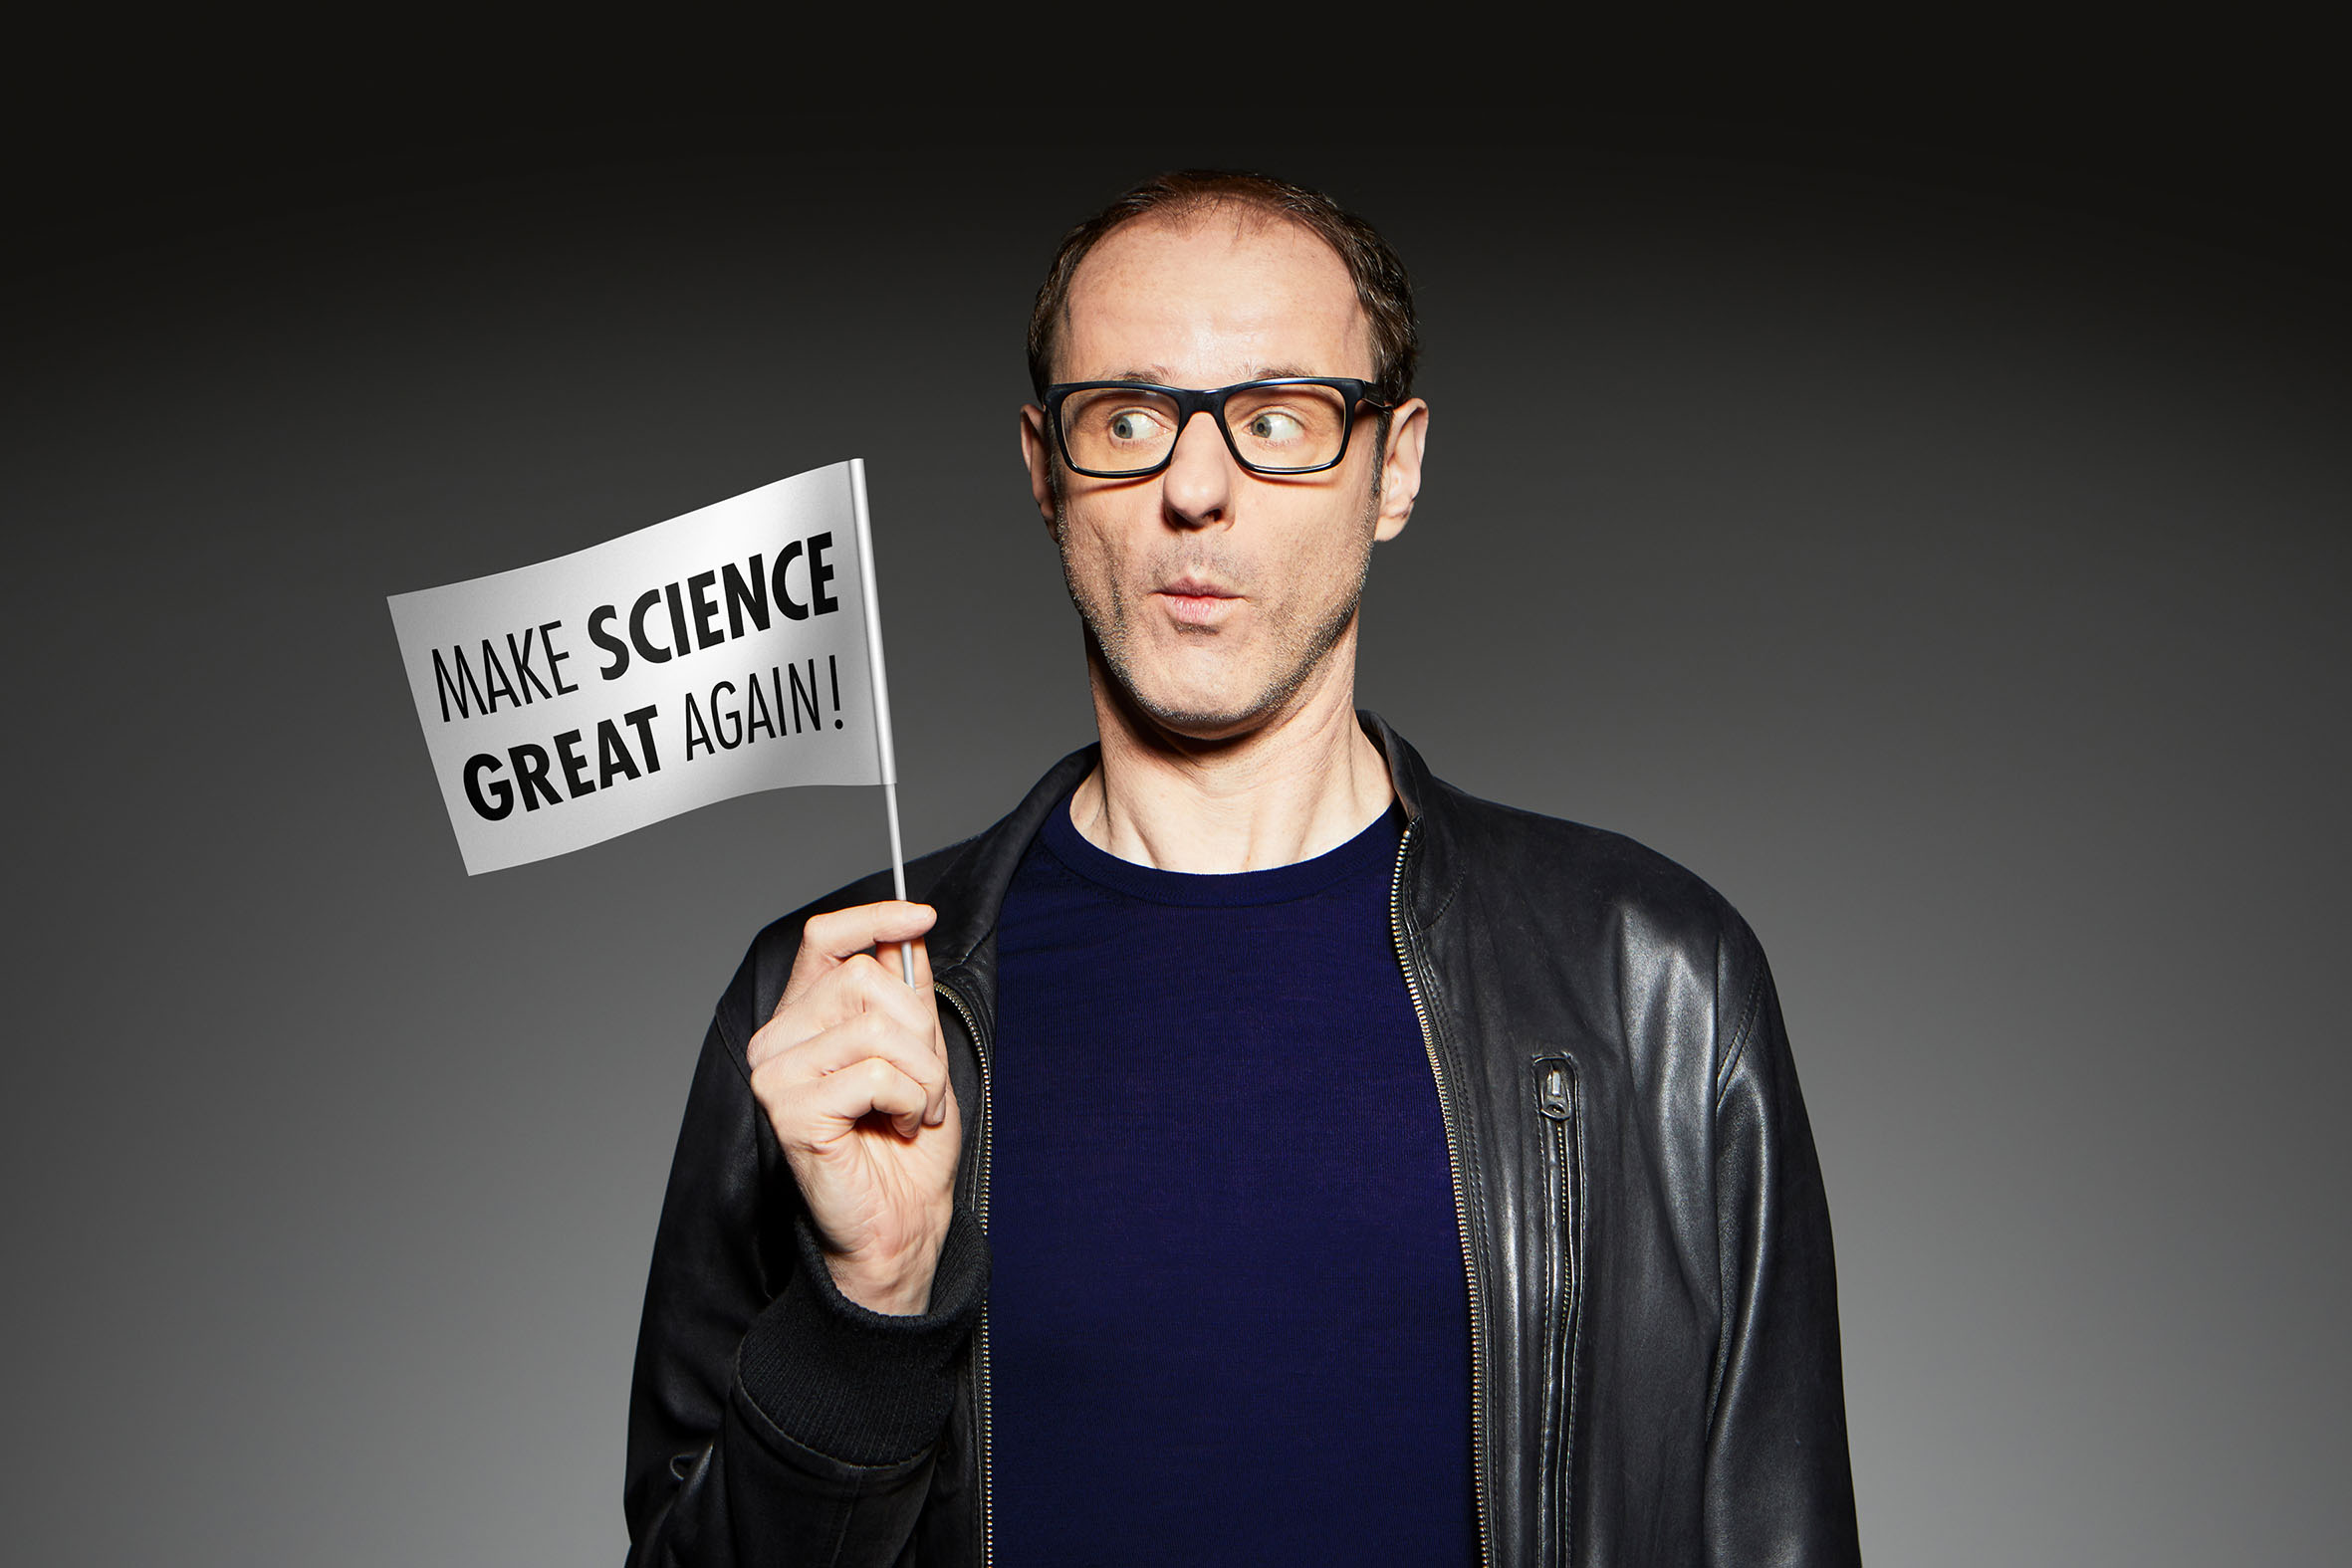 Make Science Great Again!